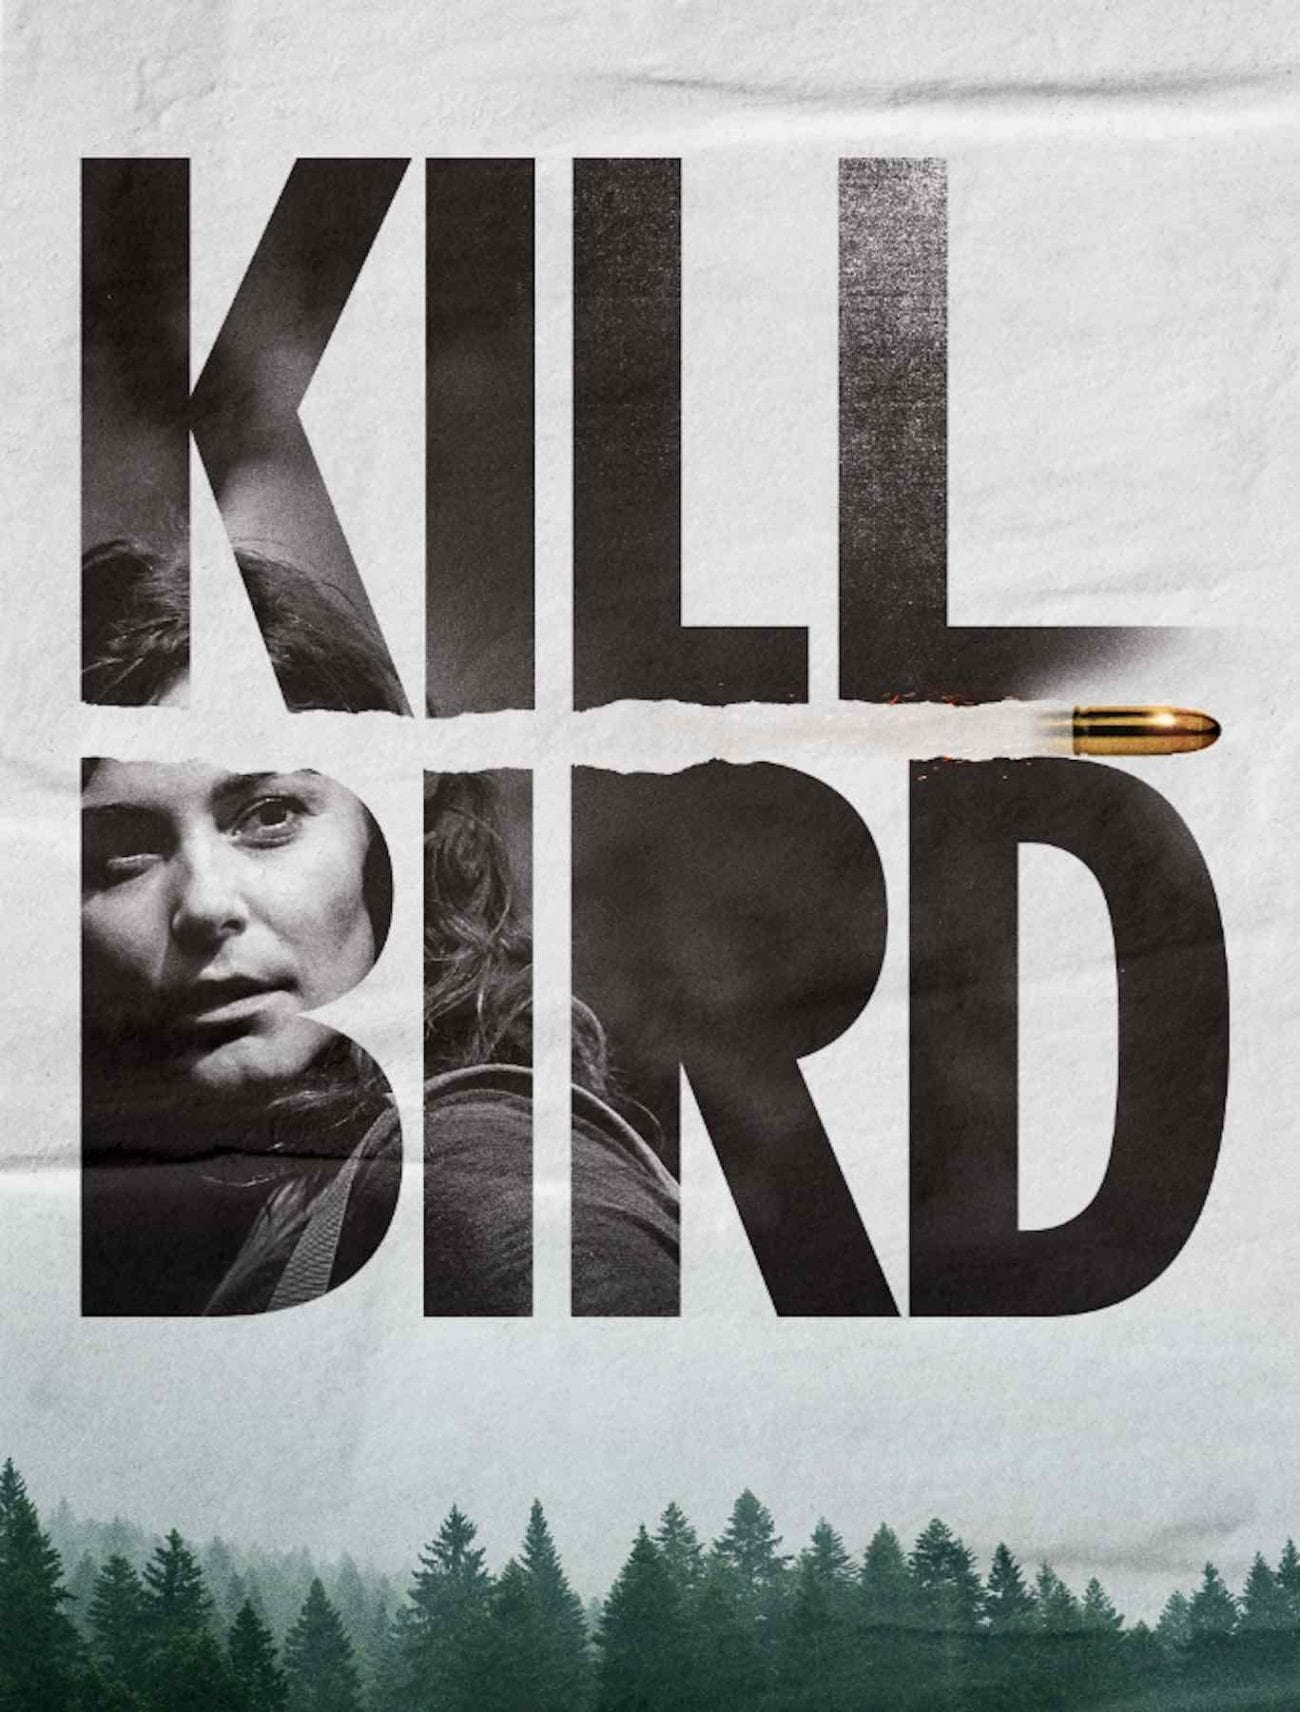 Our new indie movie obsession is Joe Zanetti's high-intensity thriller debut feature Killbird, which premiered at 2019 Dances with Films this June.